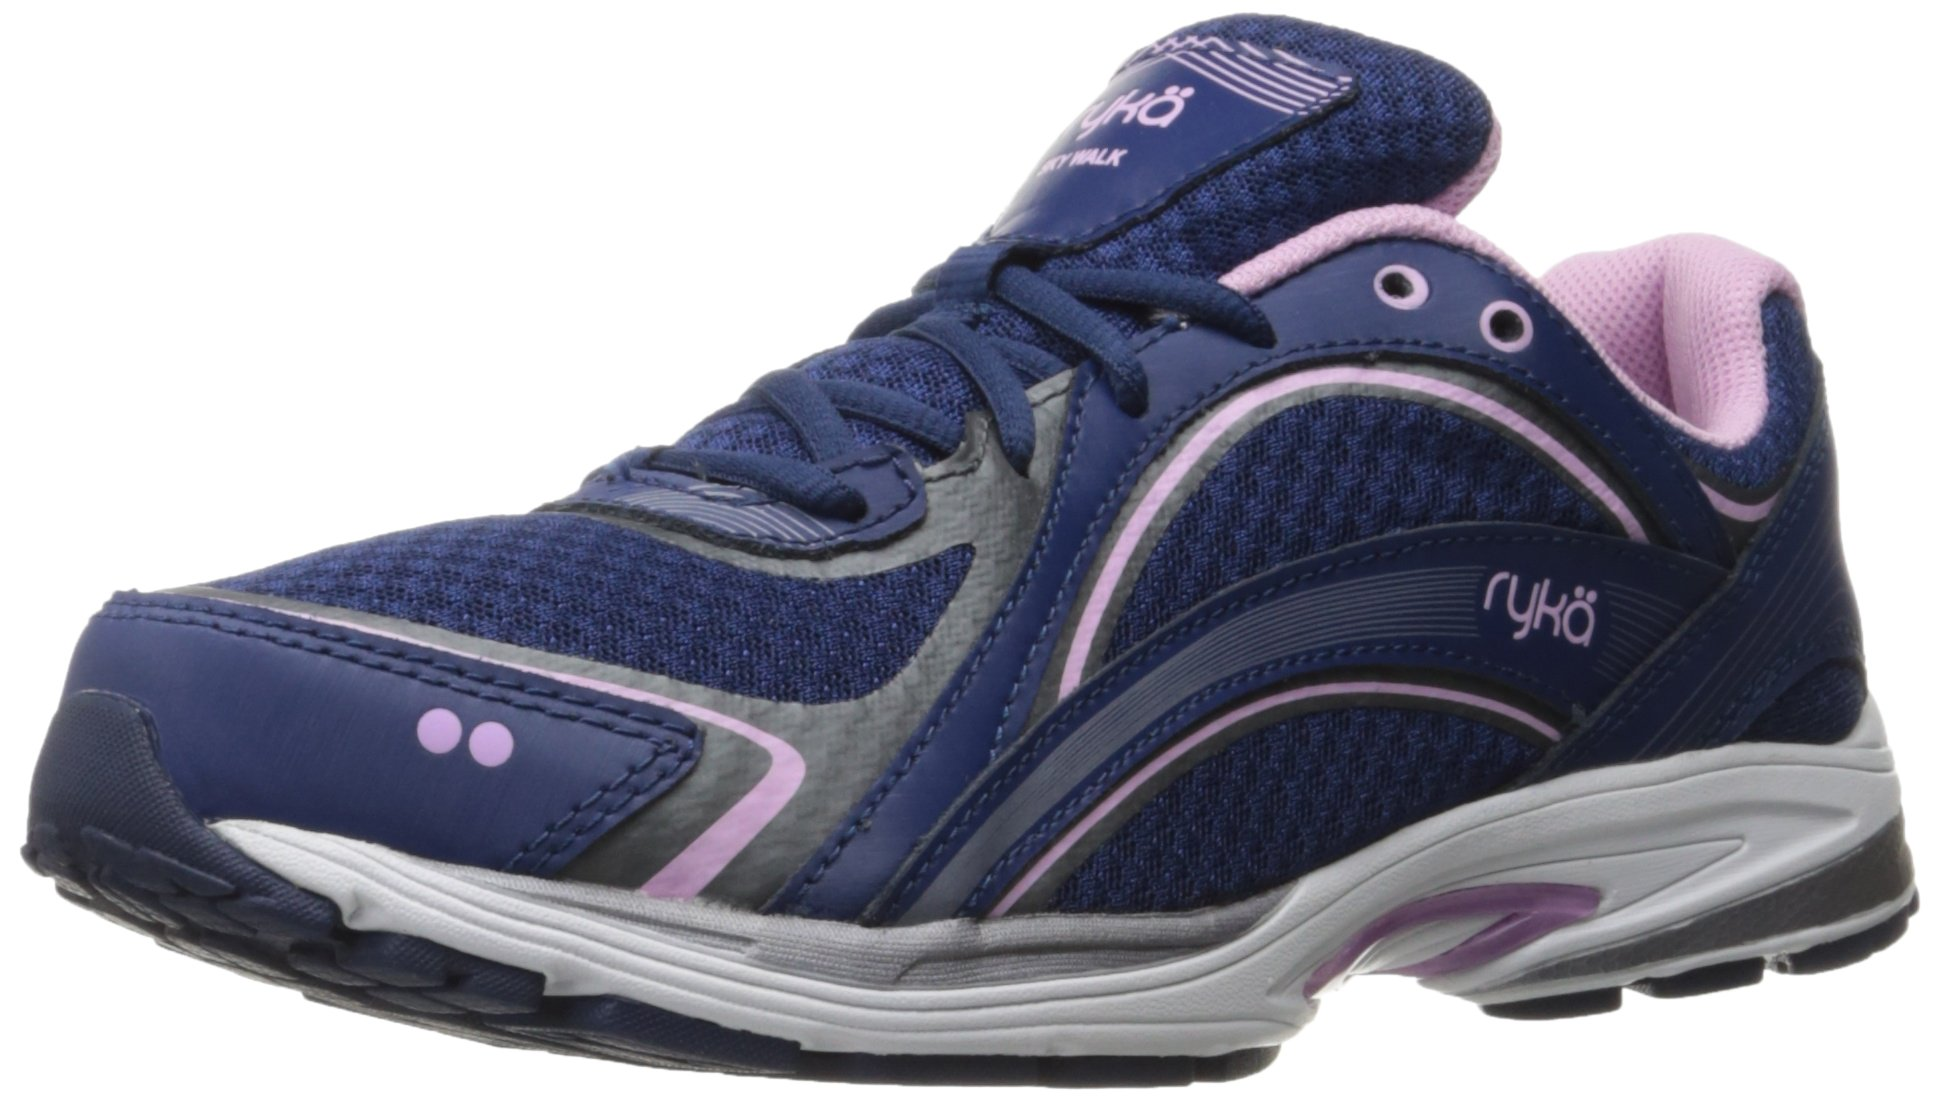 Ryka Women's Sky Walking Shoe, Navy/Lilac, 9 M US